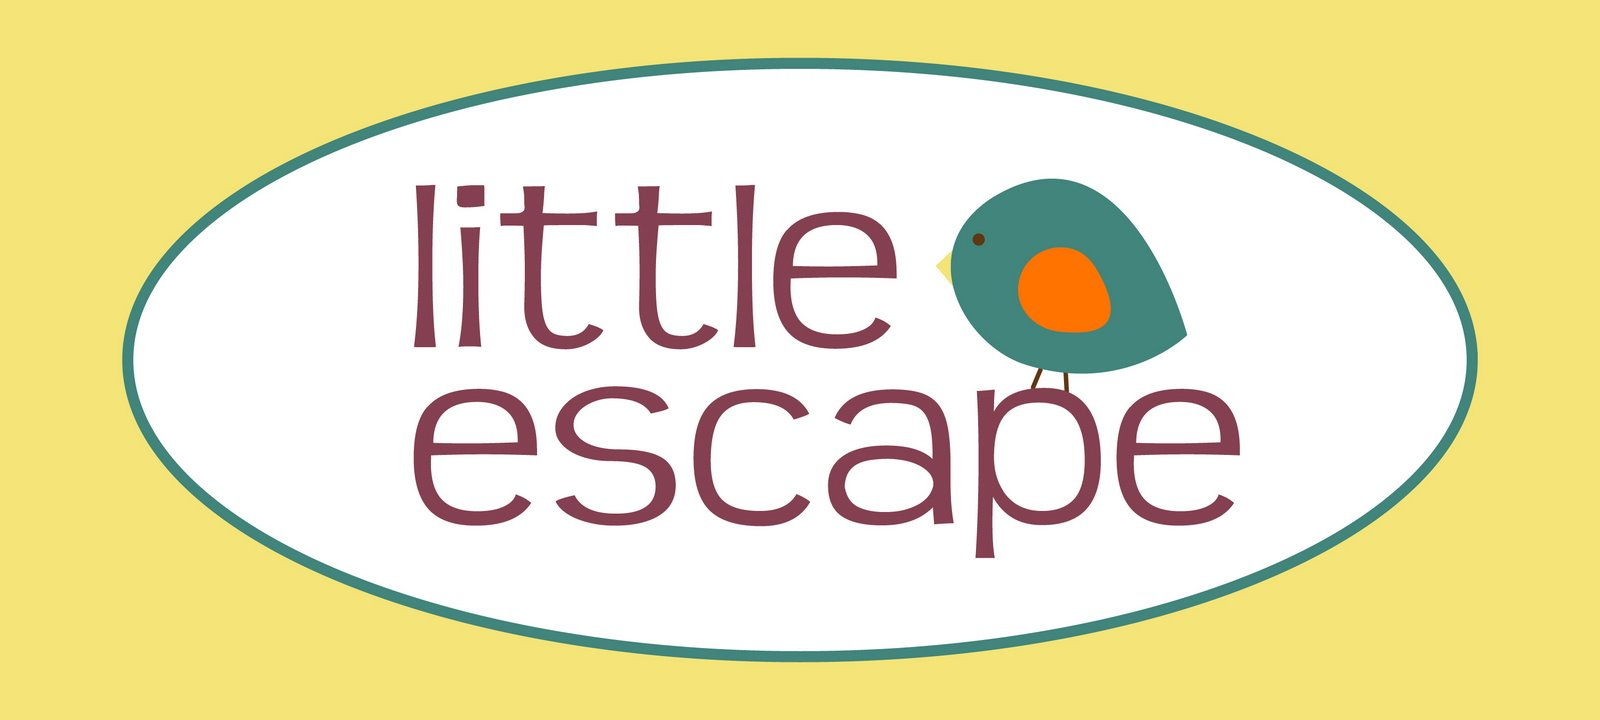 little escape